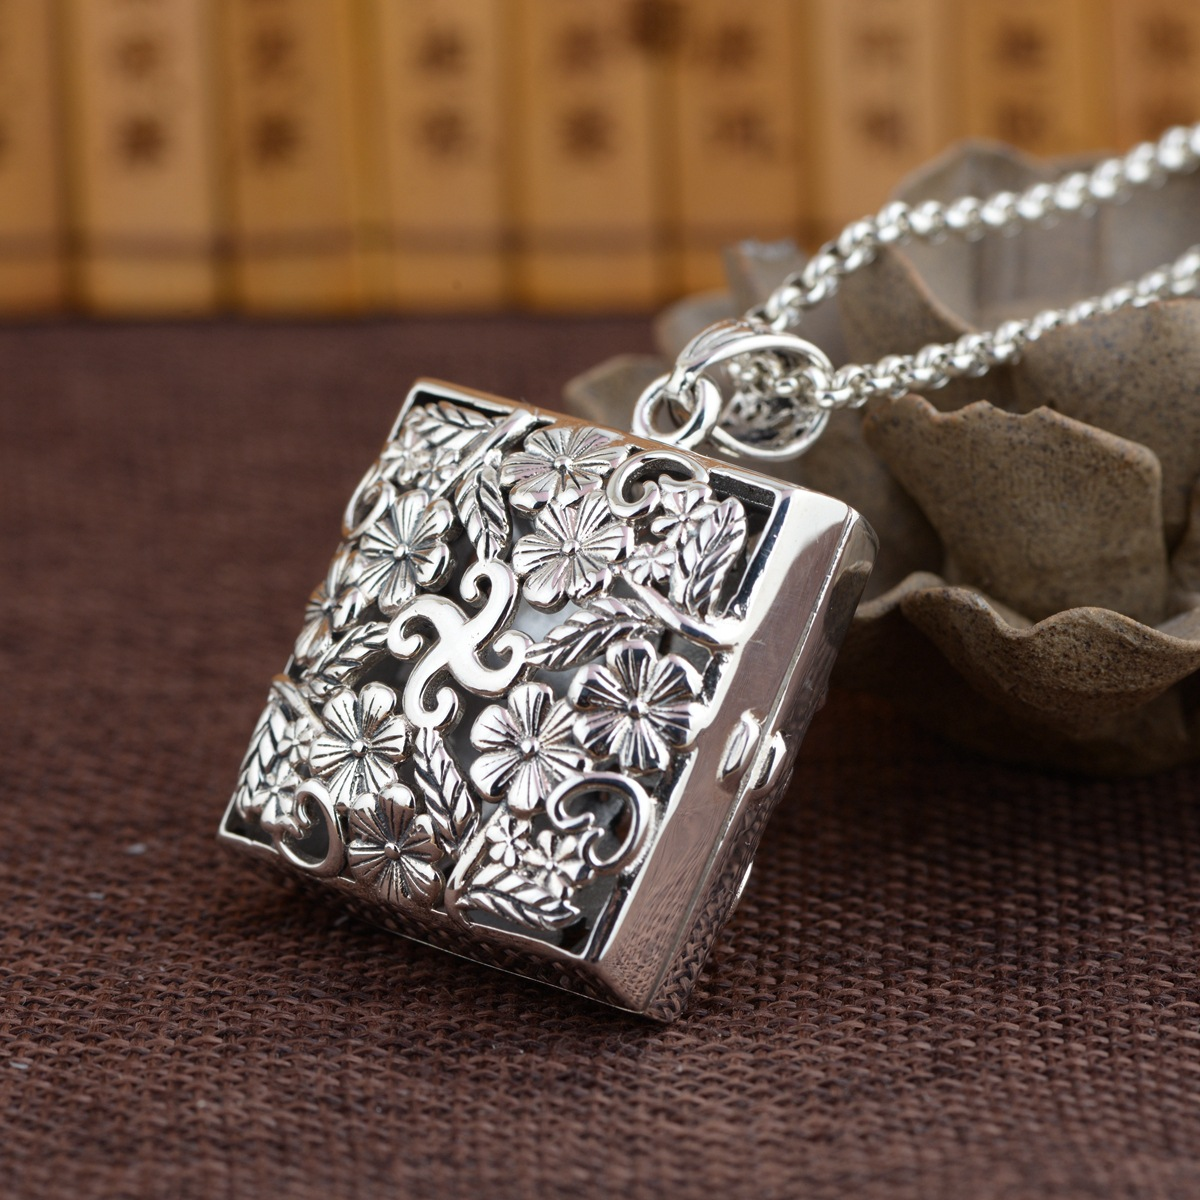 S925 silver antique process Hollow out blooming flowers ga black box pendant female model Thai silver wholesaleS925 silver antique process Hollow out blooming flowers ga black box pendant female model Thai silver wholesale